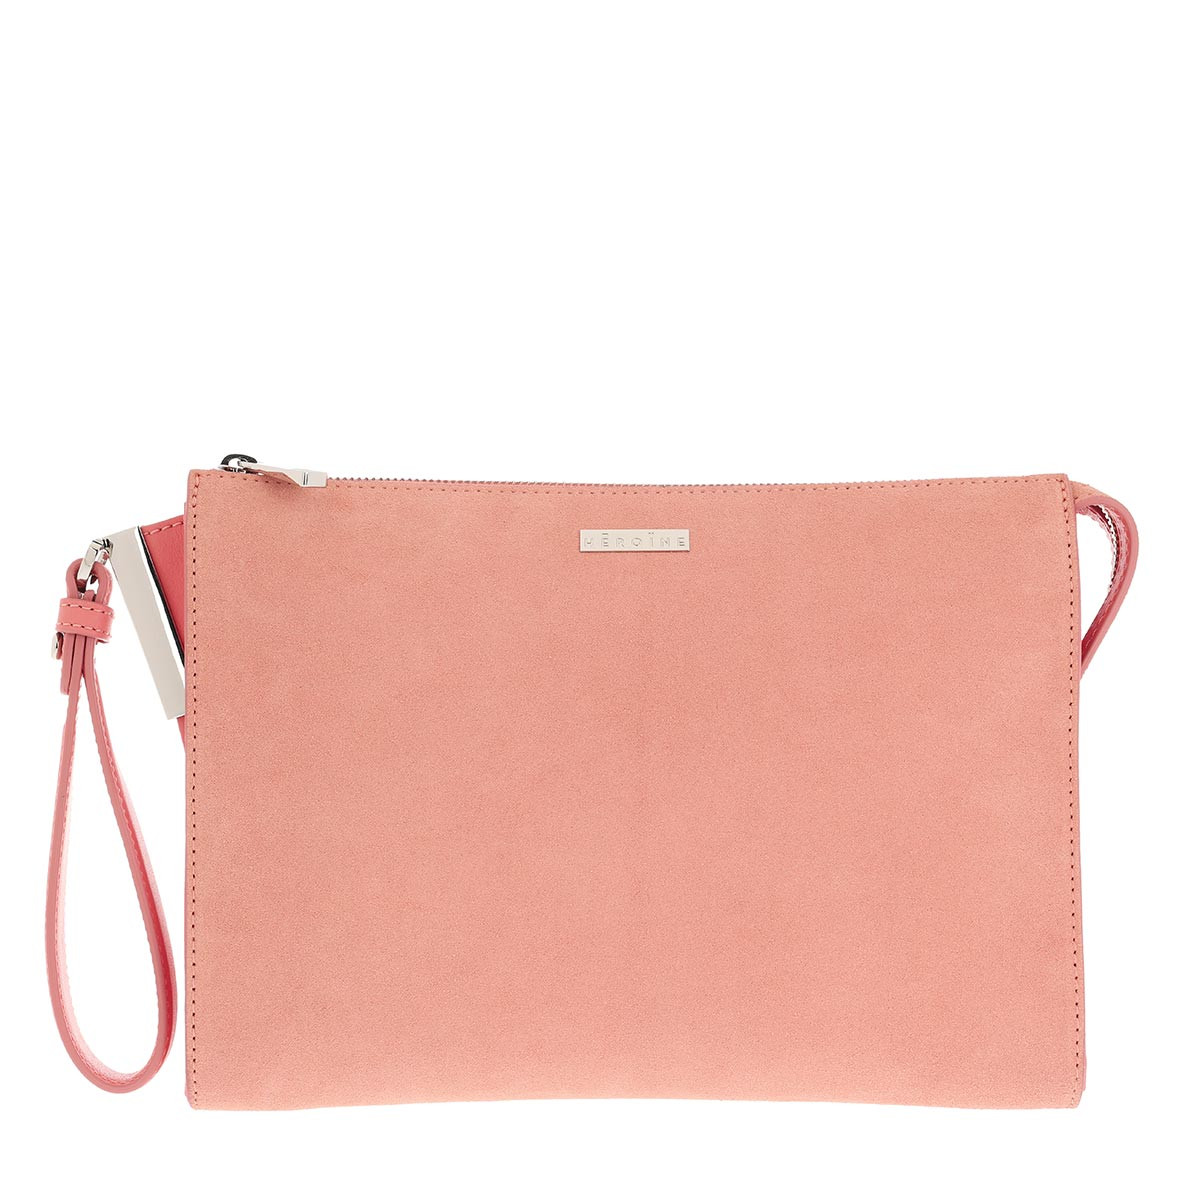 Iva Tablet Bag Coral Crush/Coral Crush Suede/Silver